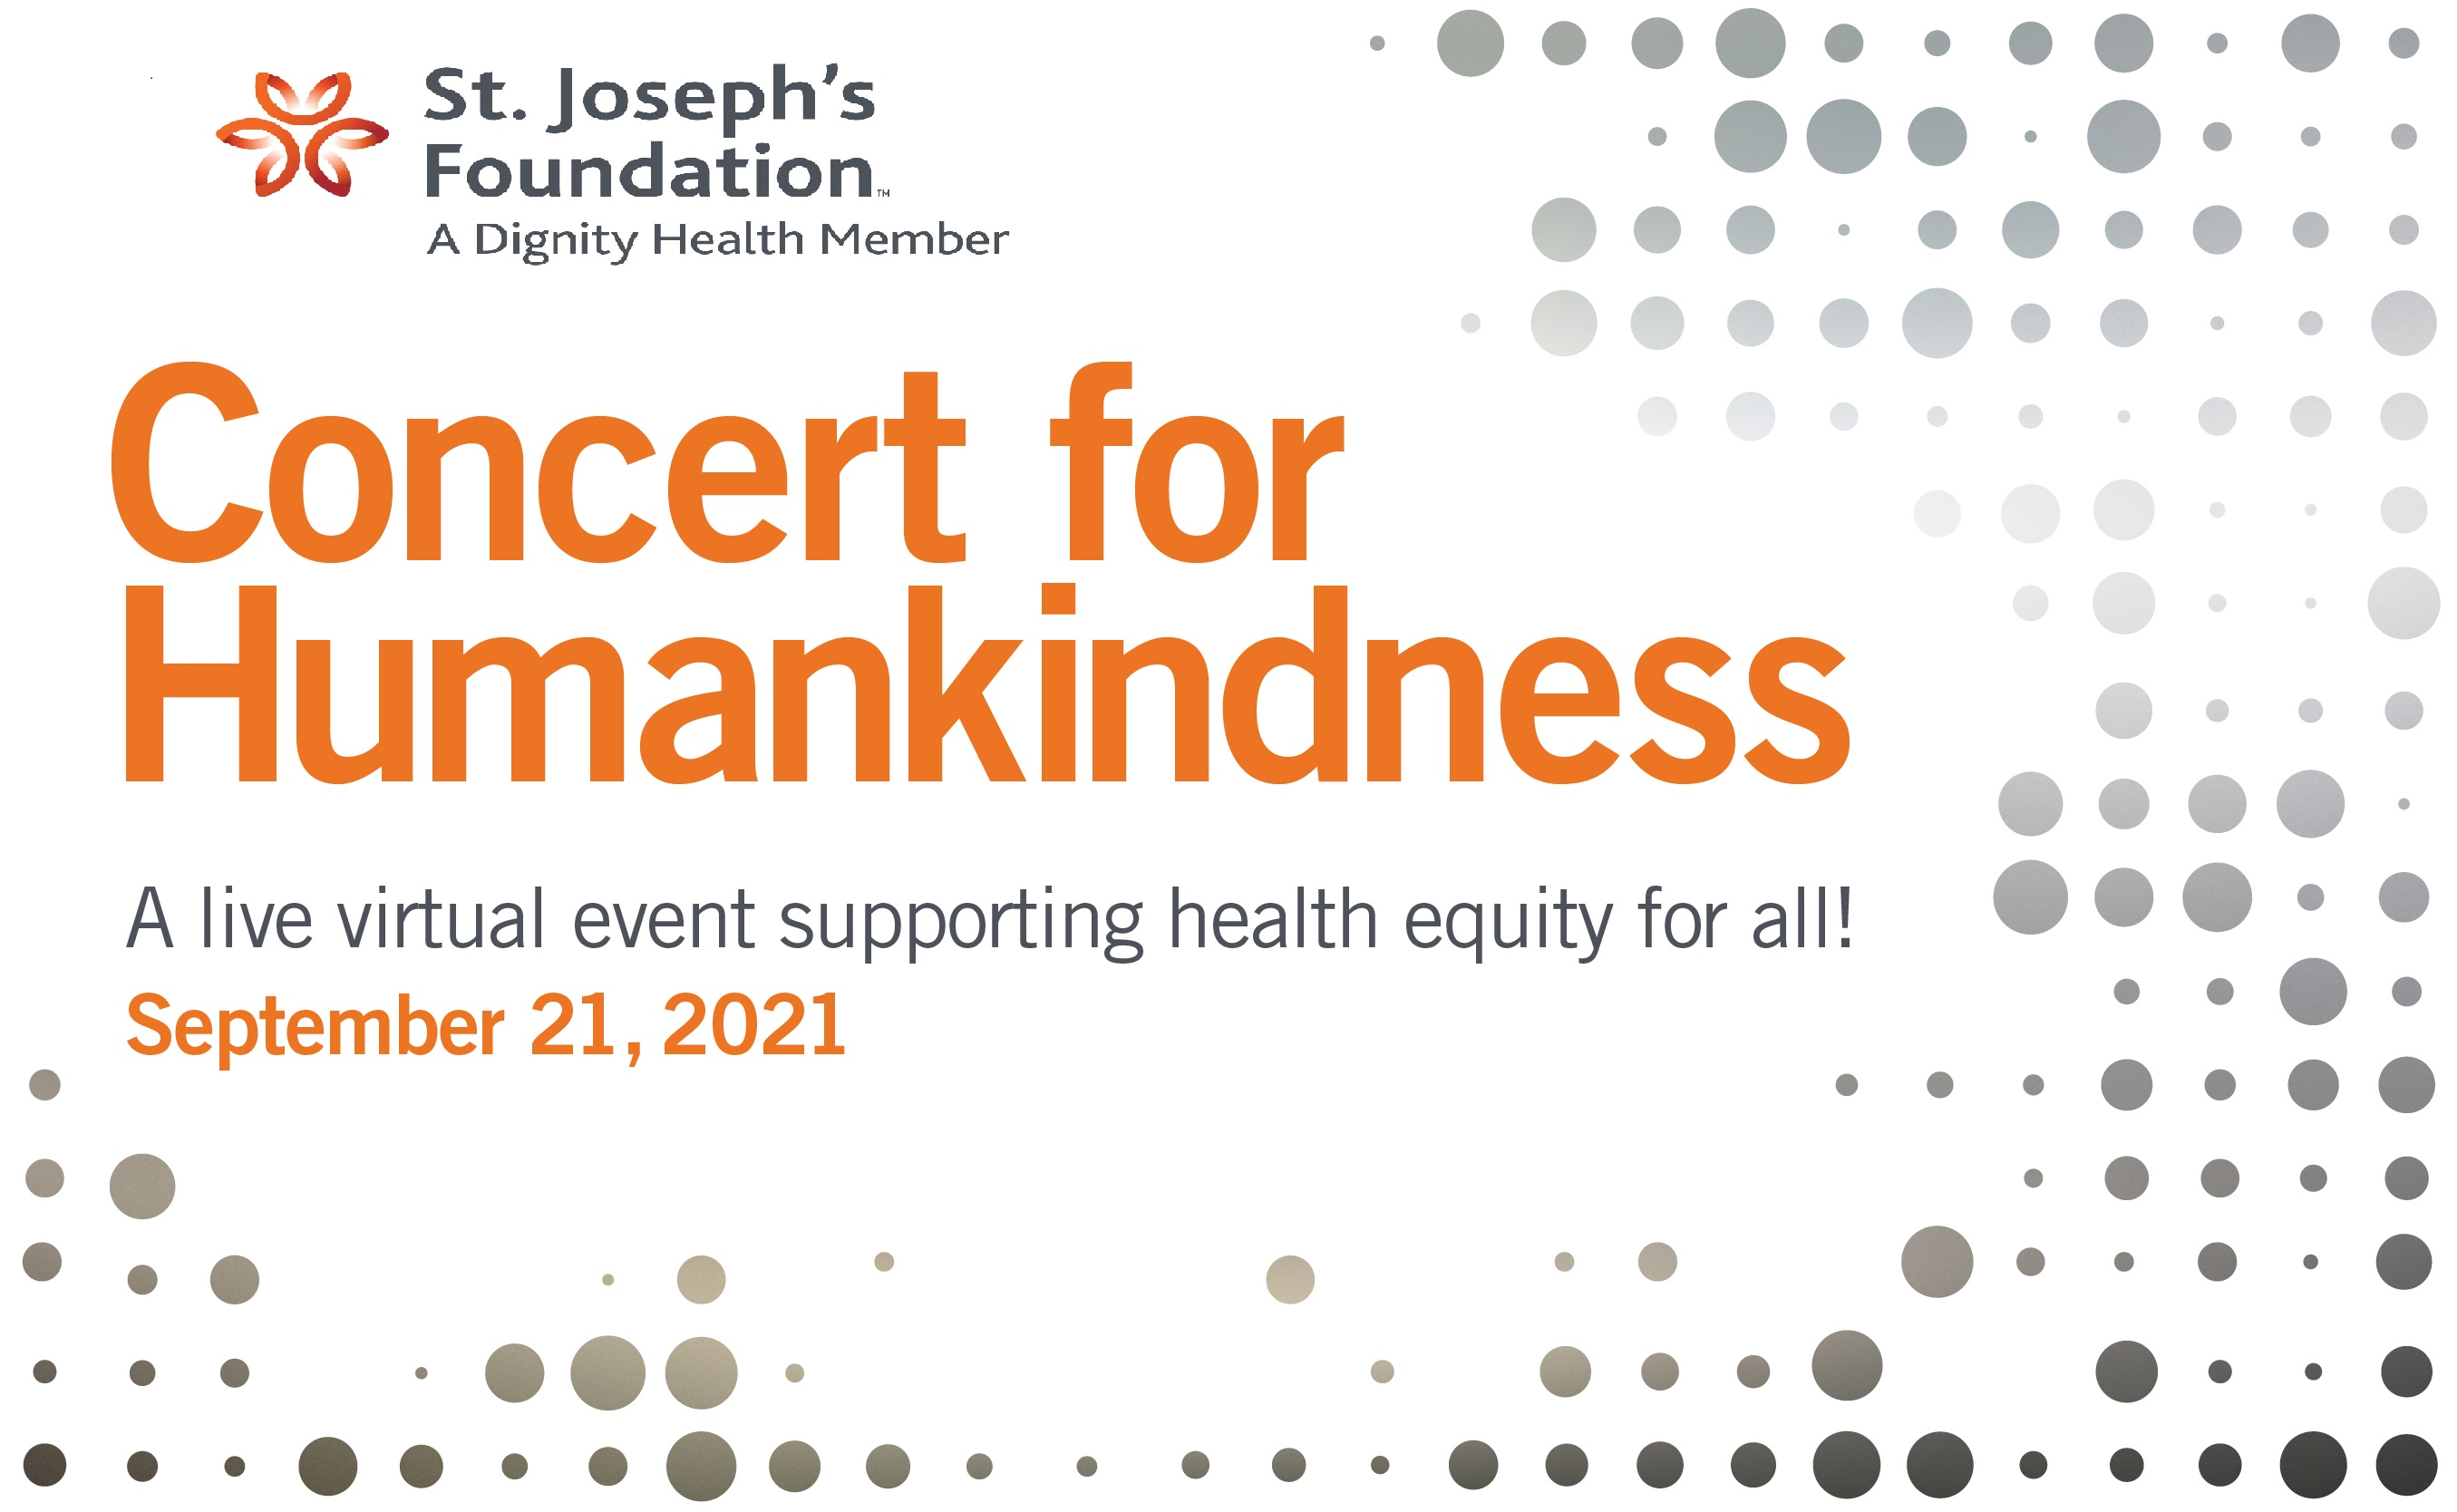 concert for humankindness promo